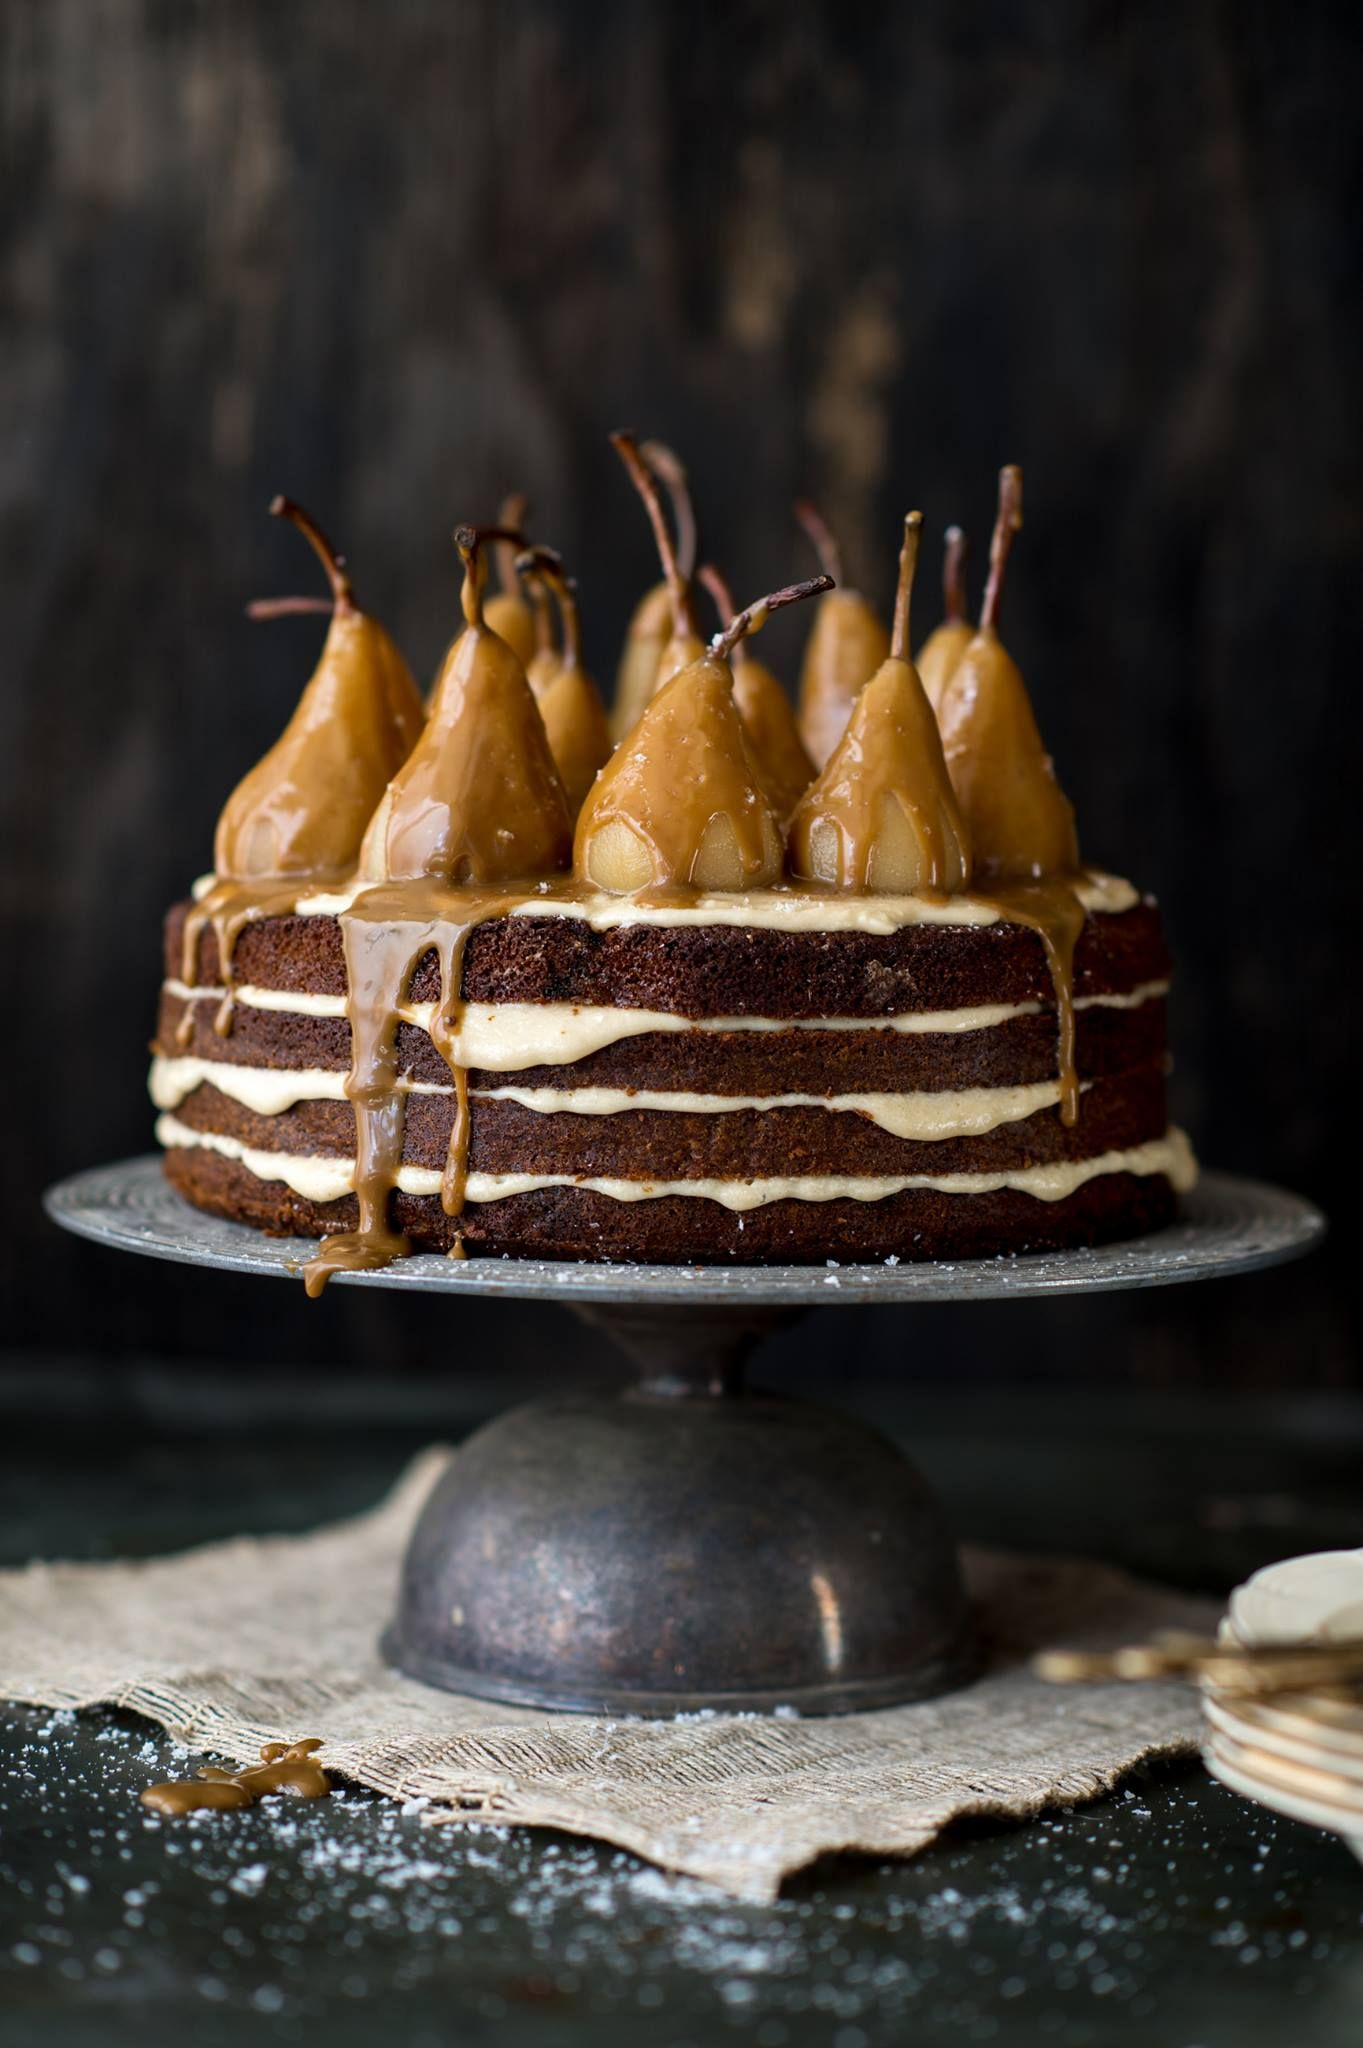 I don't know what this really is, but I fantasize that it is a spice cake, heavy on the ginger with a brown sugar buttercream frosting and a caramel drizzle, sounds so yummy!